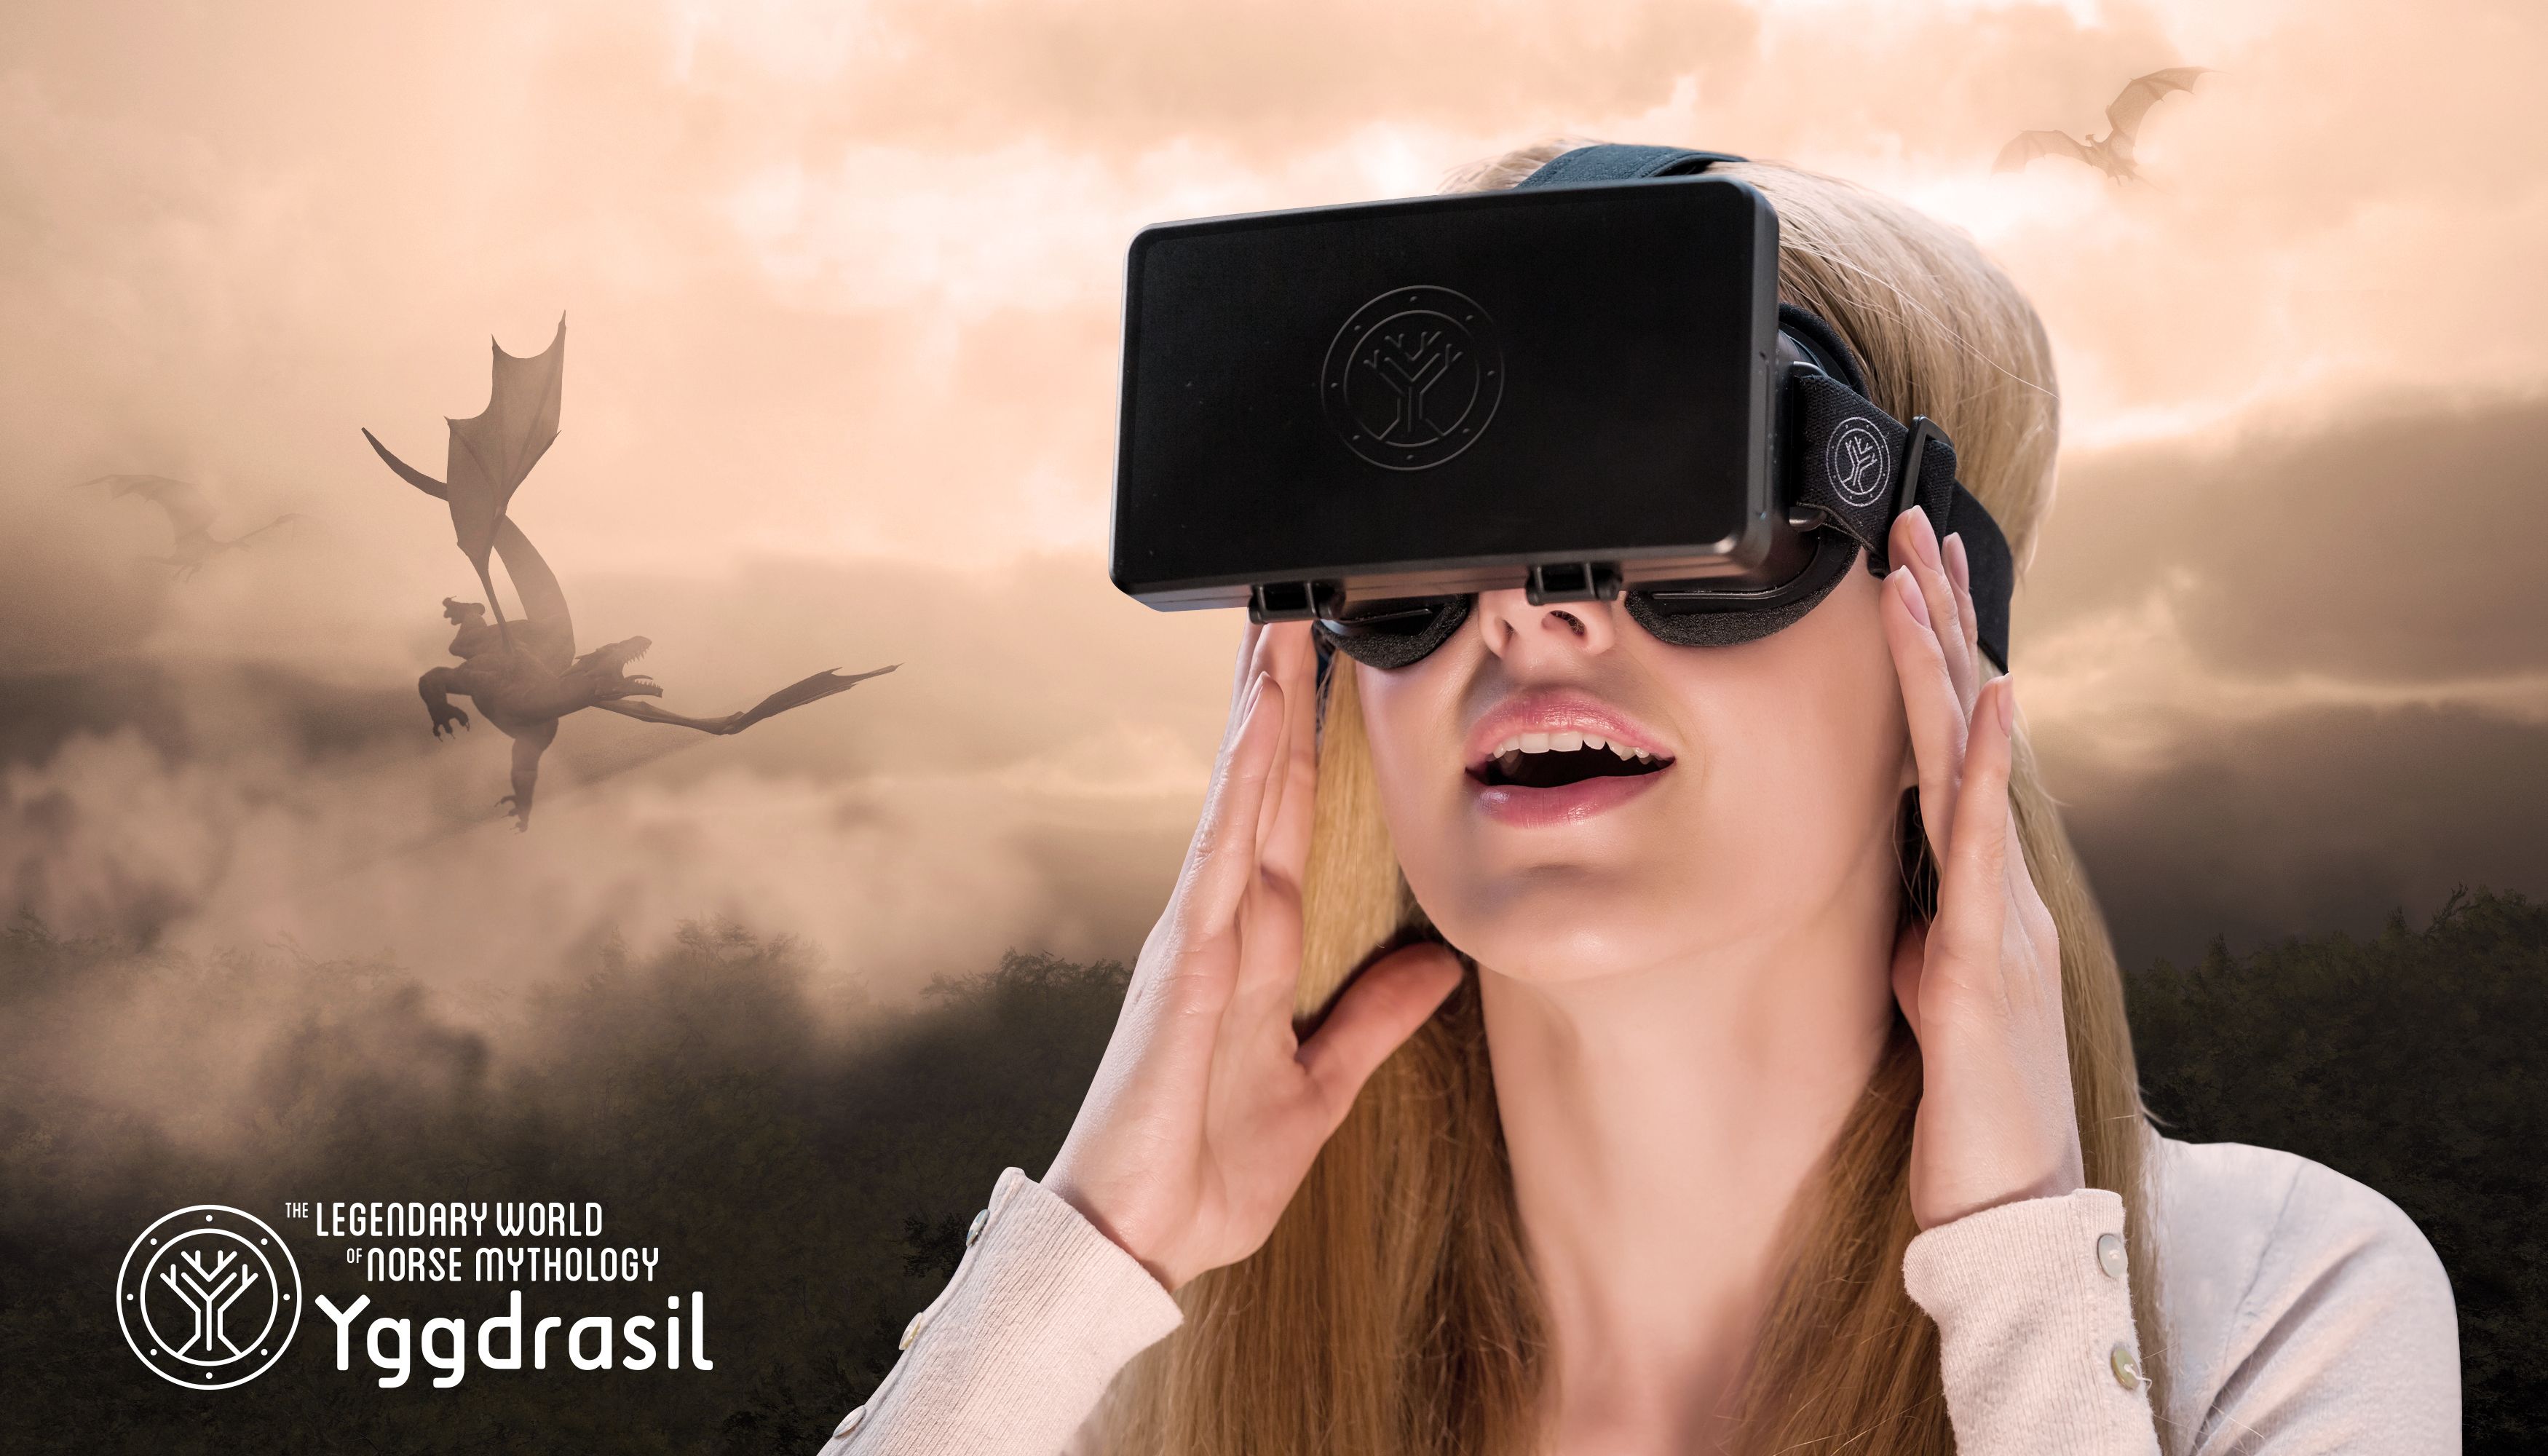 A new VR theme park set to open in 2019 in Denmark is being designed around virtual reality.